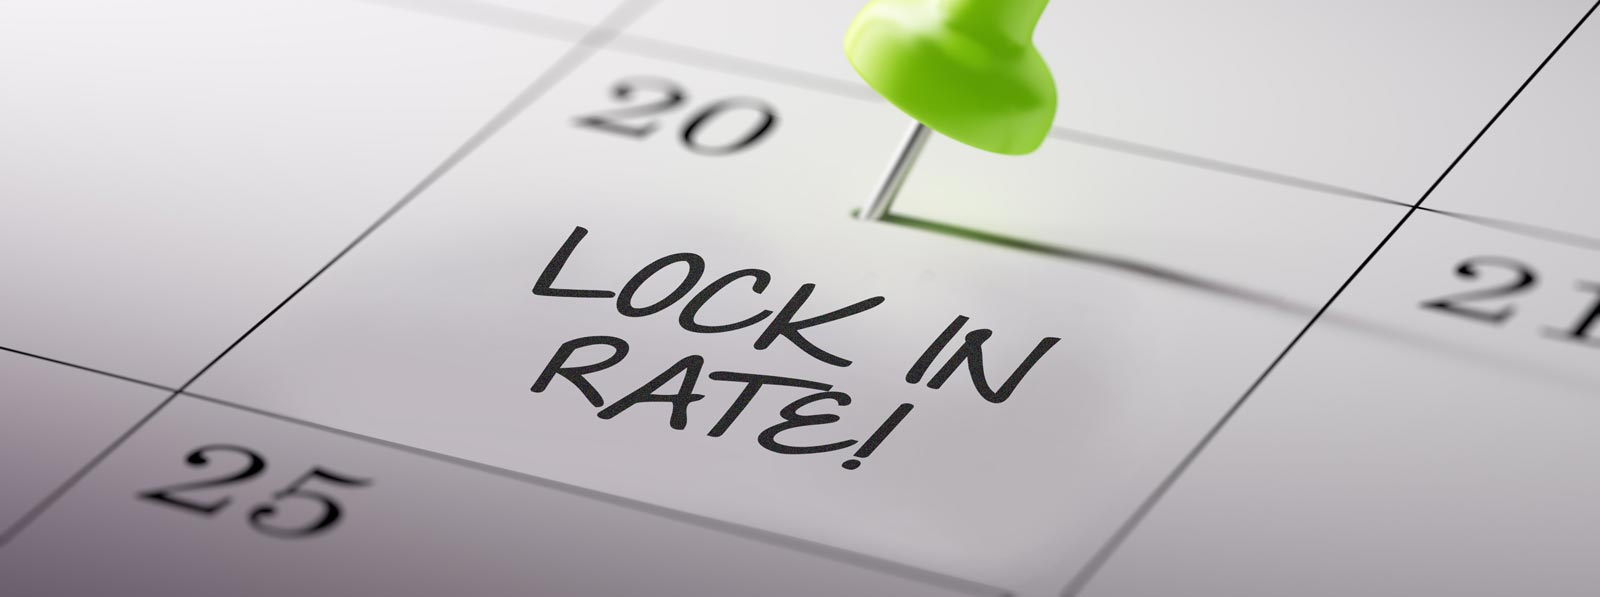 Lock your rate before it's too late